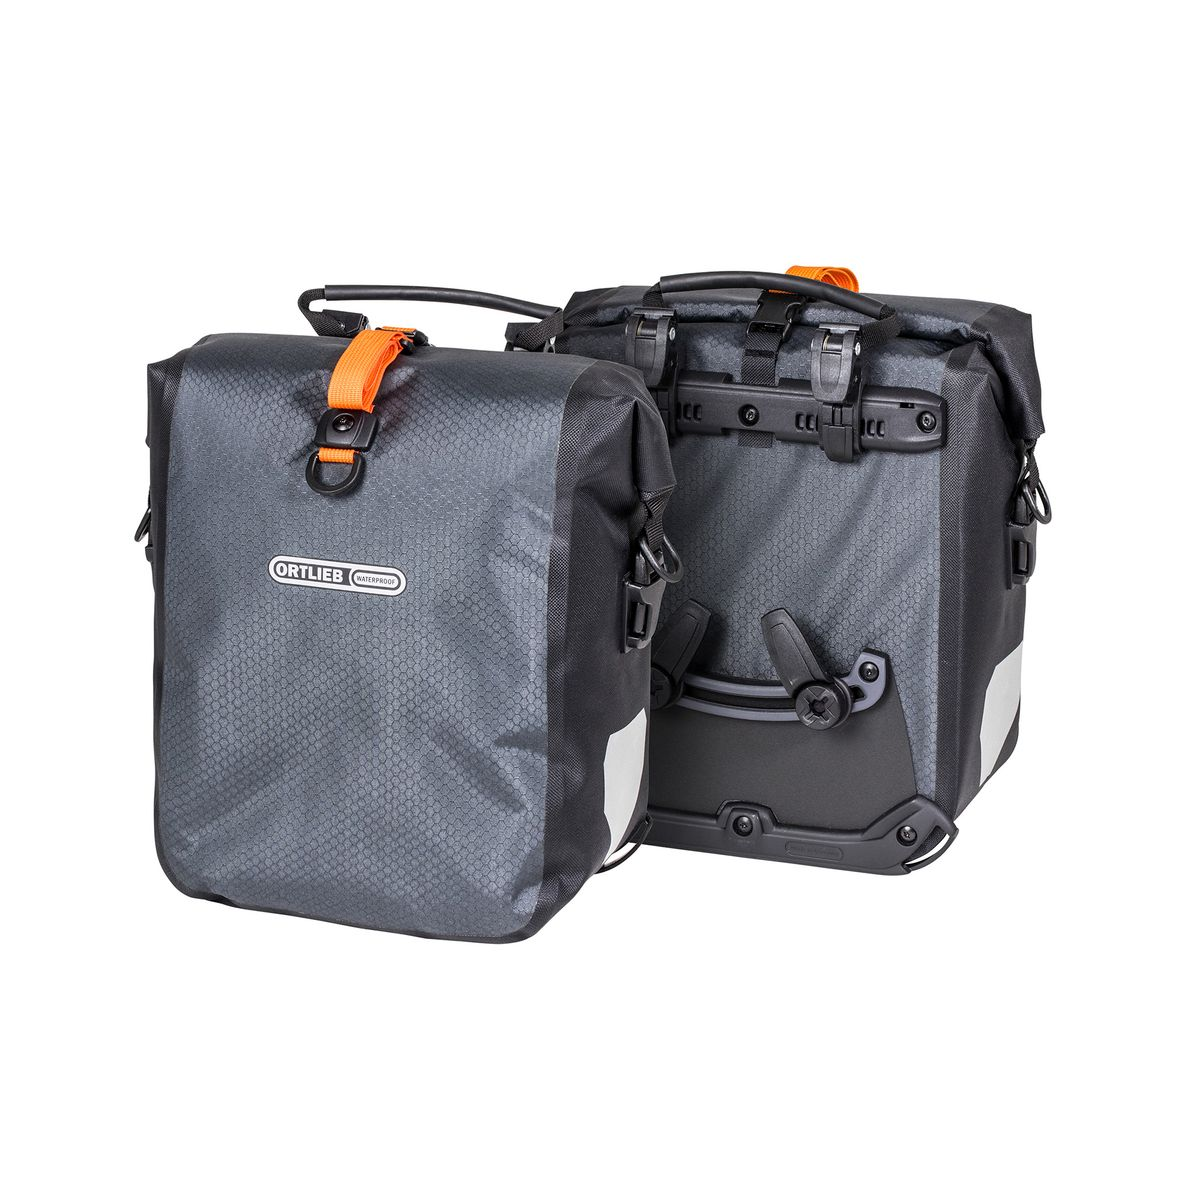 BIKE PACKING GRAVEL-PACK Set of Two Pannier Bags